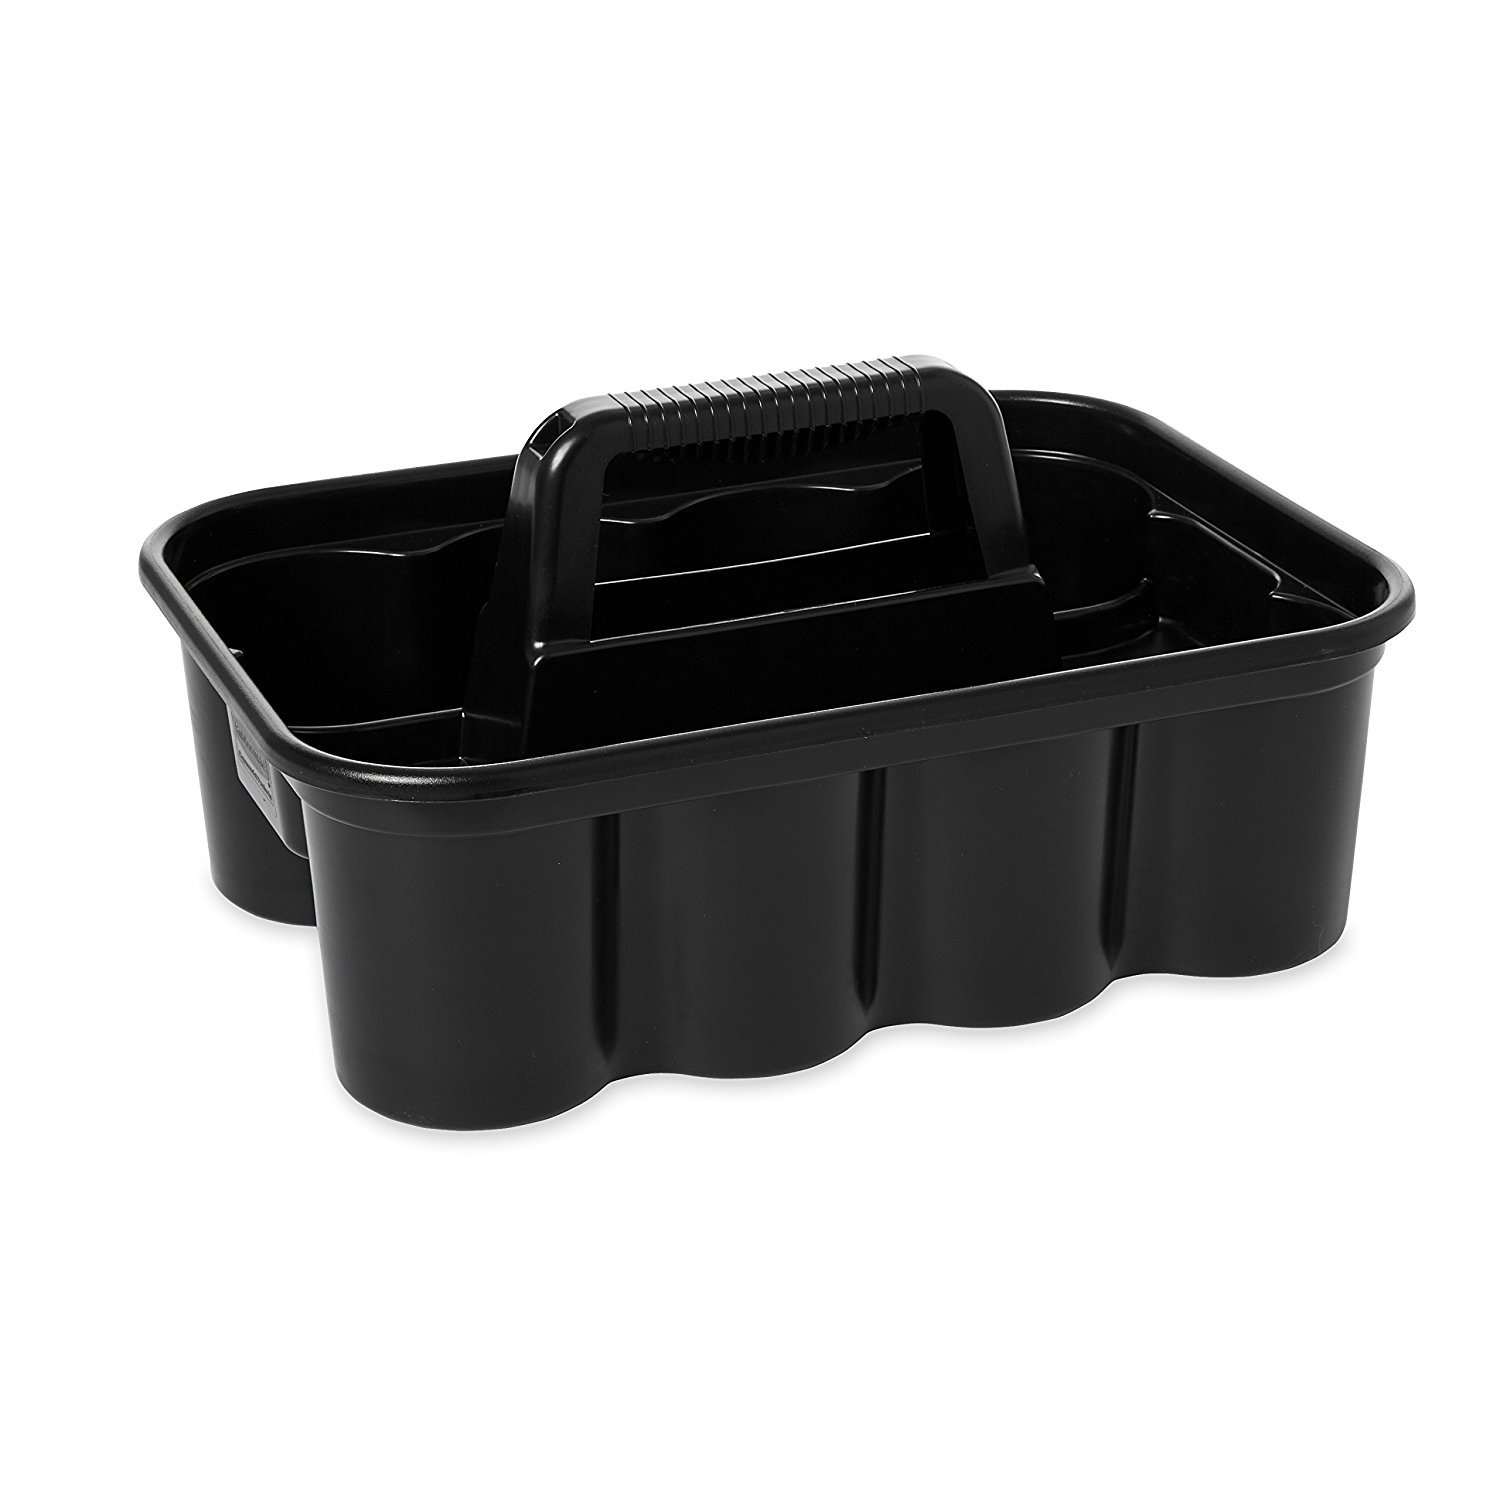 Rubbermaid Commercial Deluxe Carry Cleaning Caddy, Black (2 ''PACK